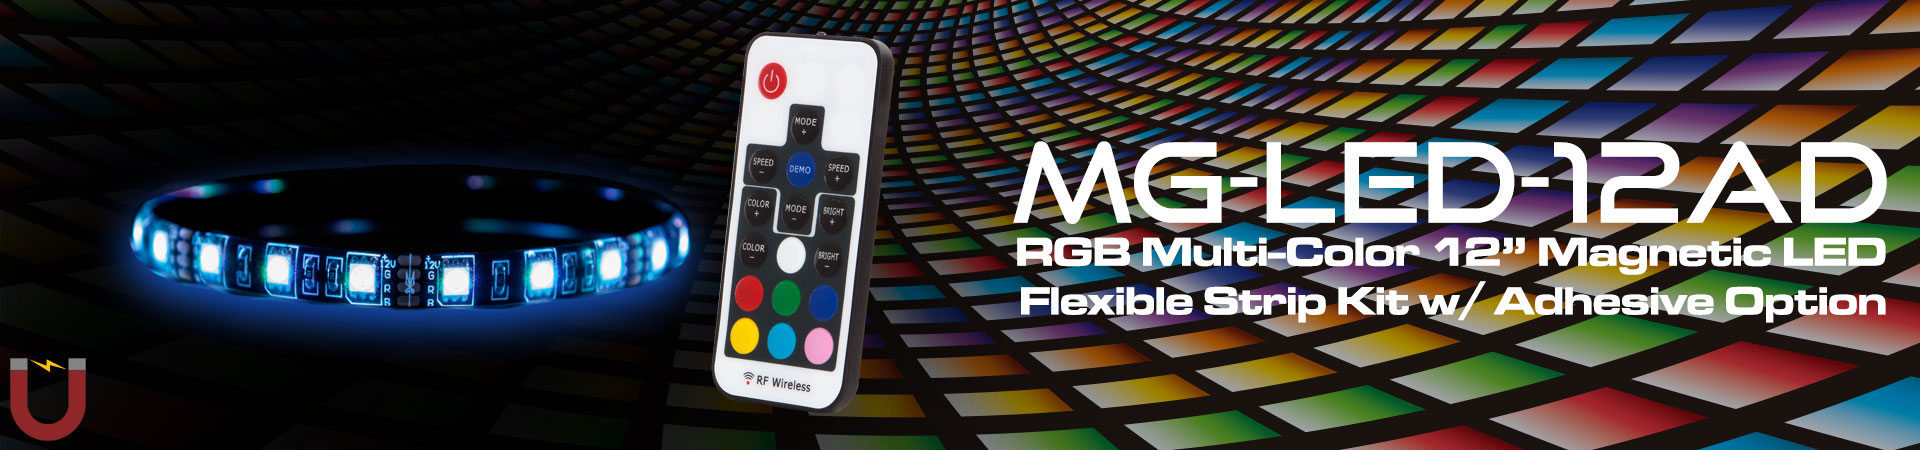 MG-LED-12AD_Banner3